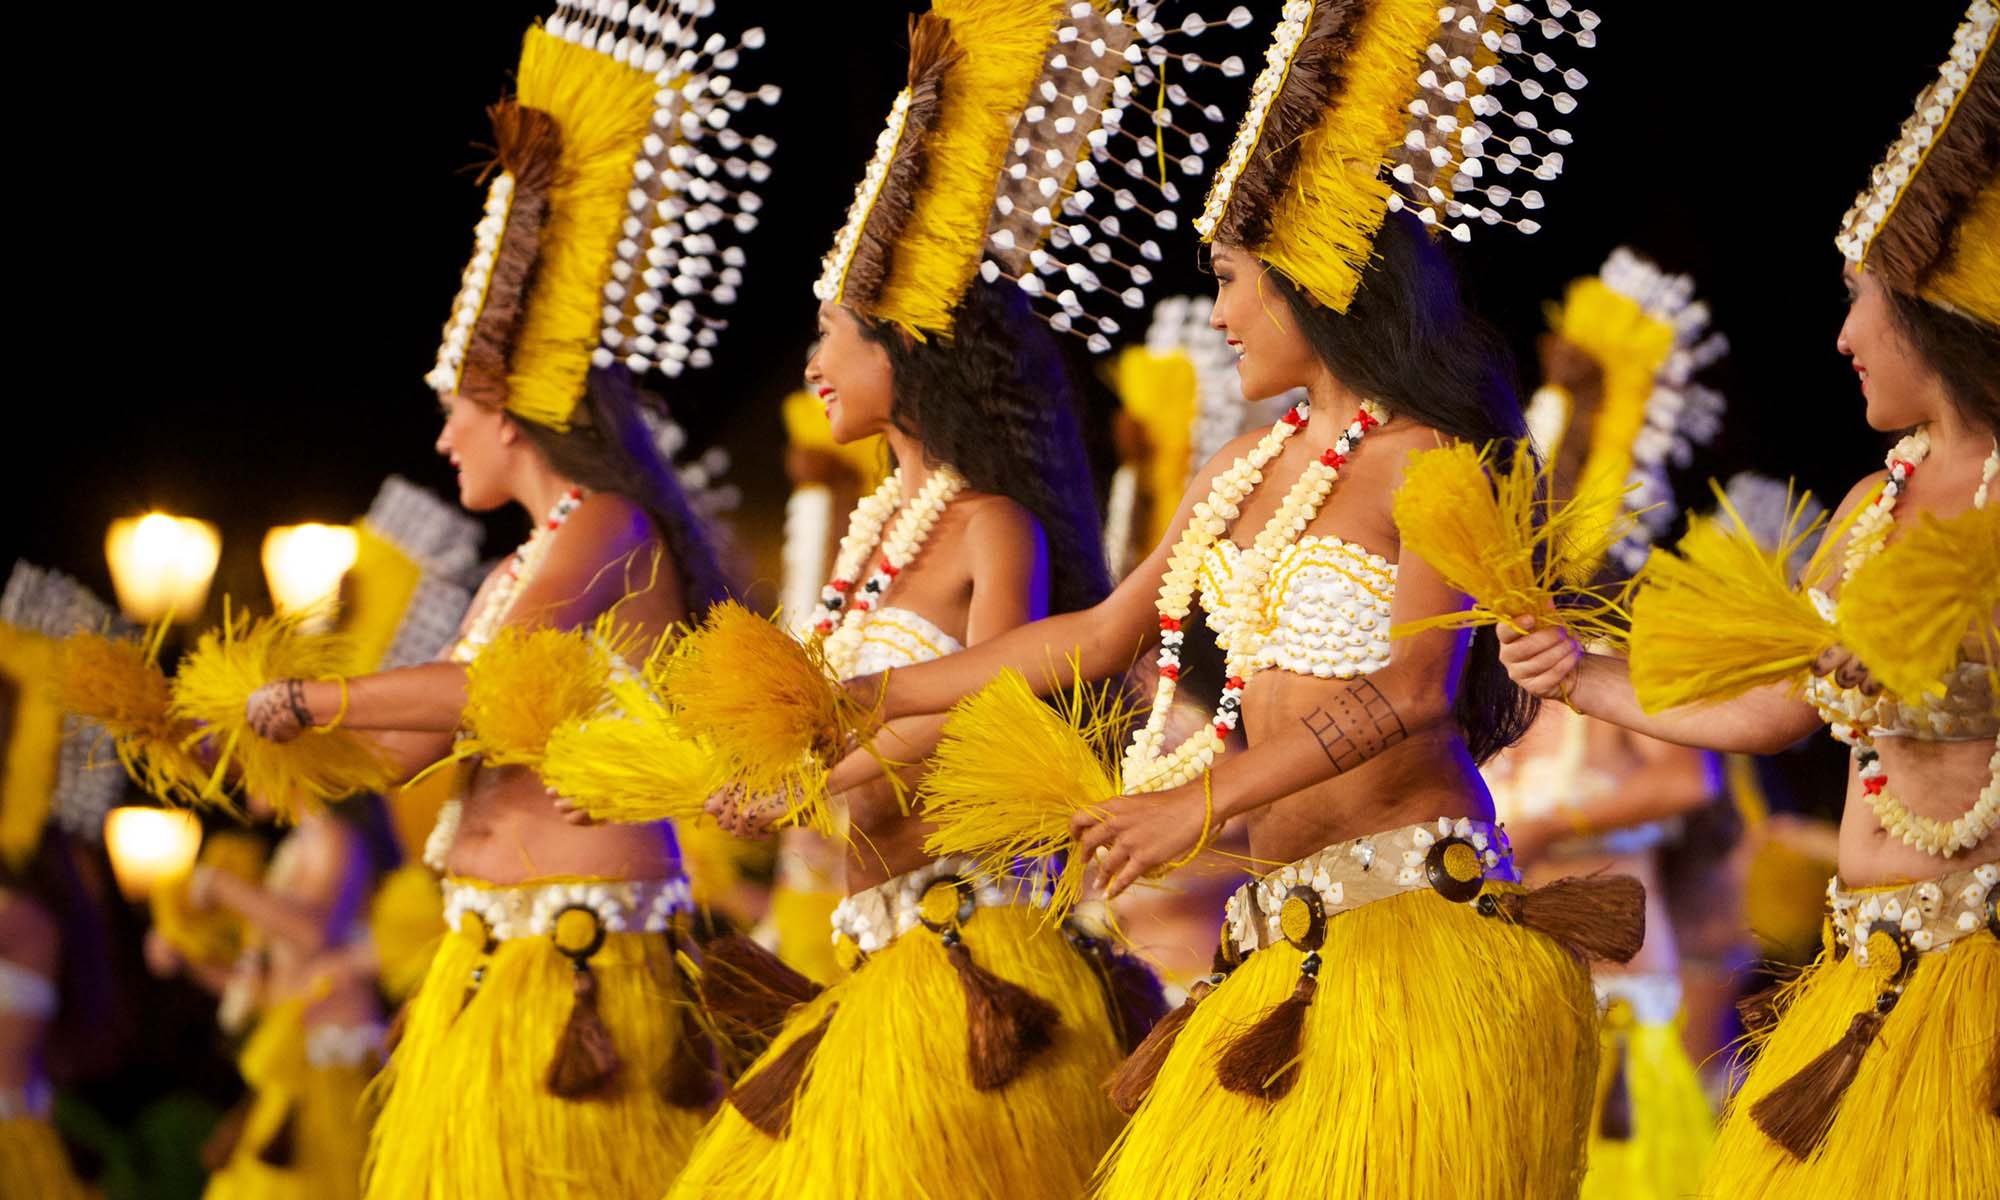 Tahitian Dancers Entertain During a Theme Night at the Resort